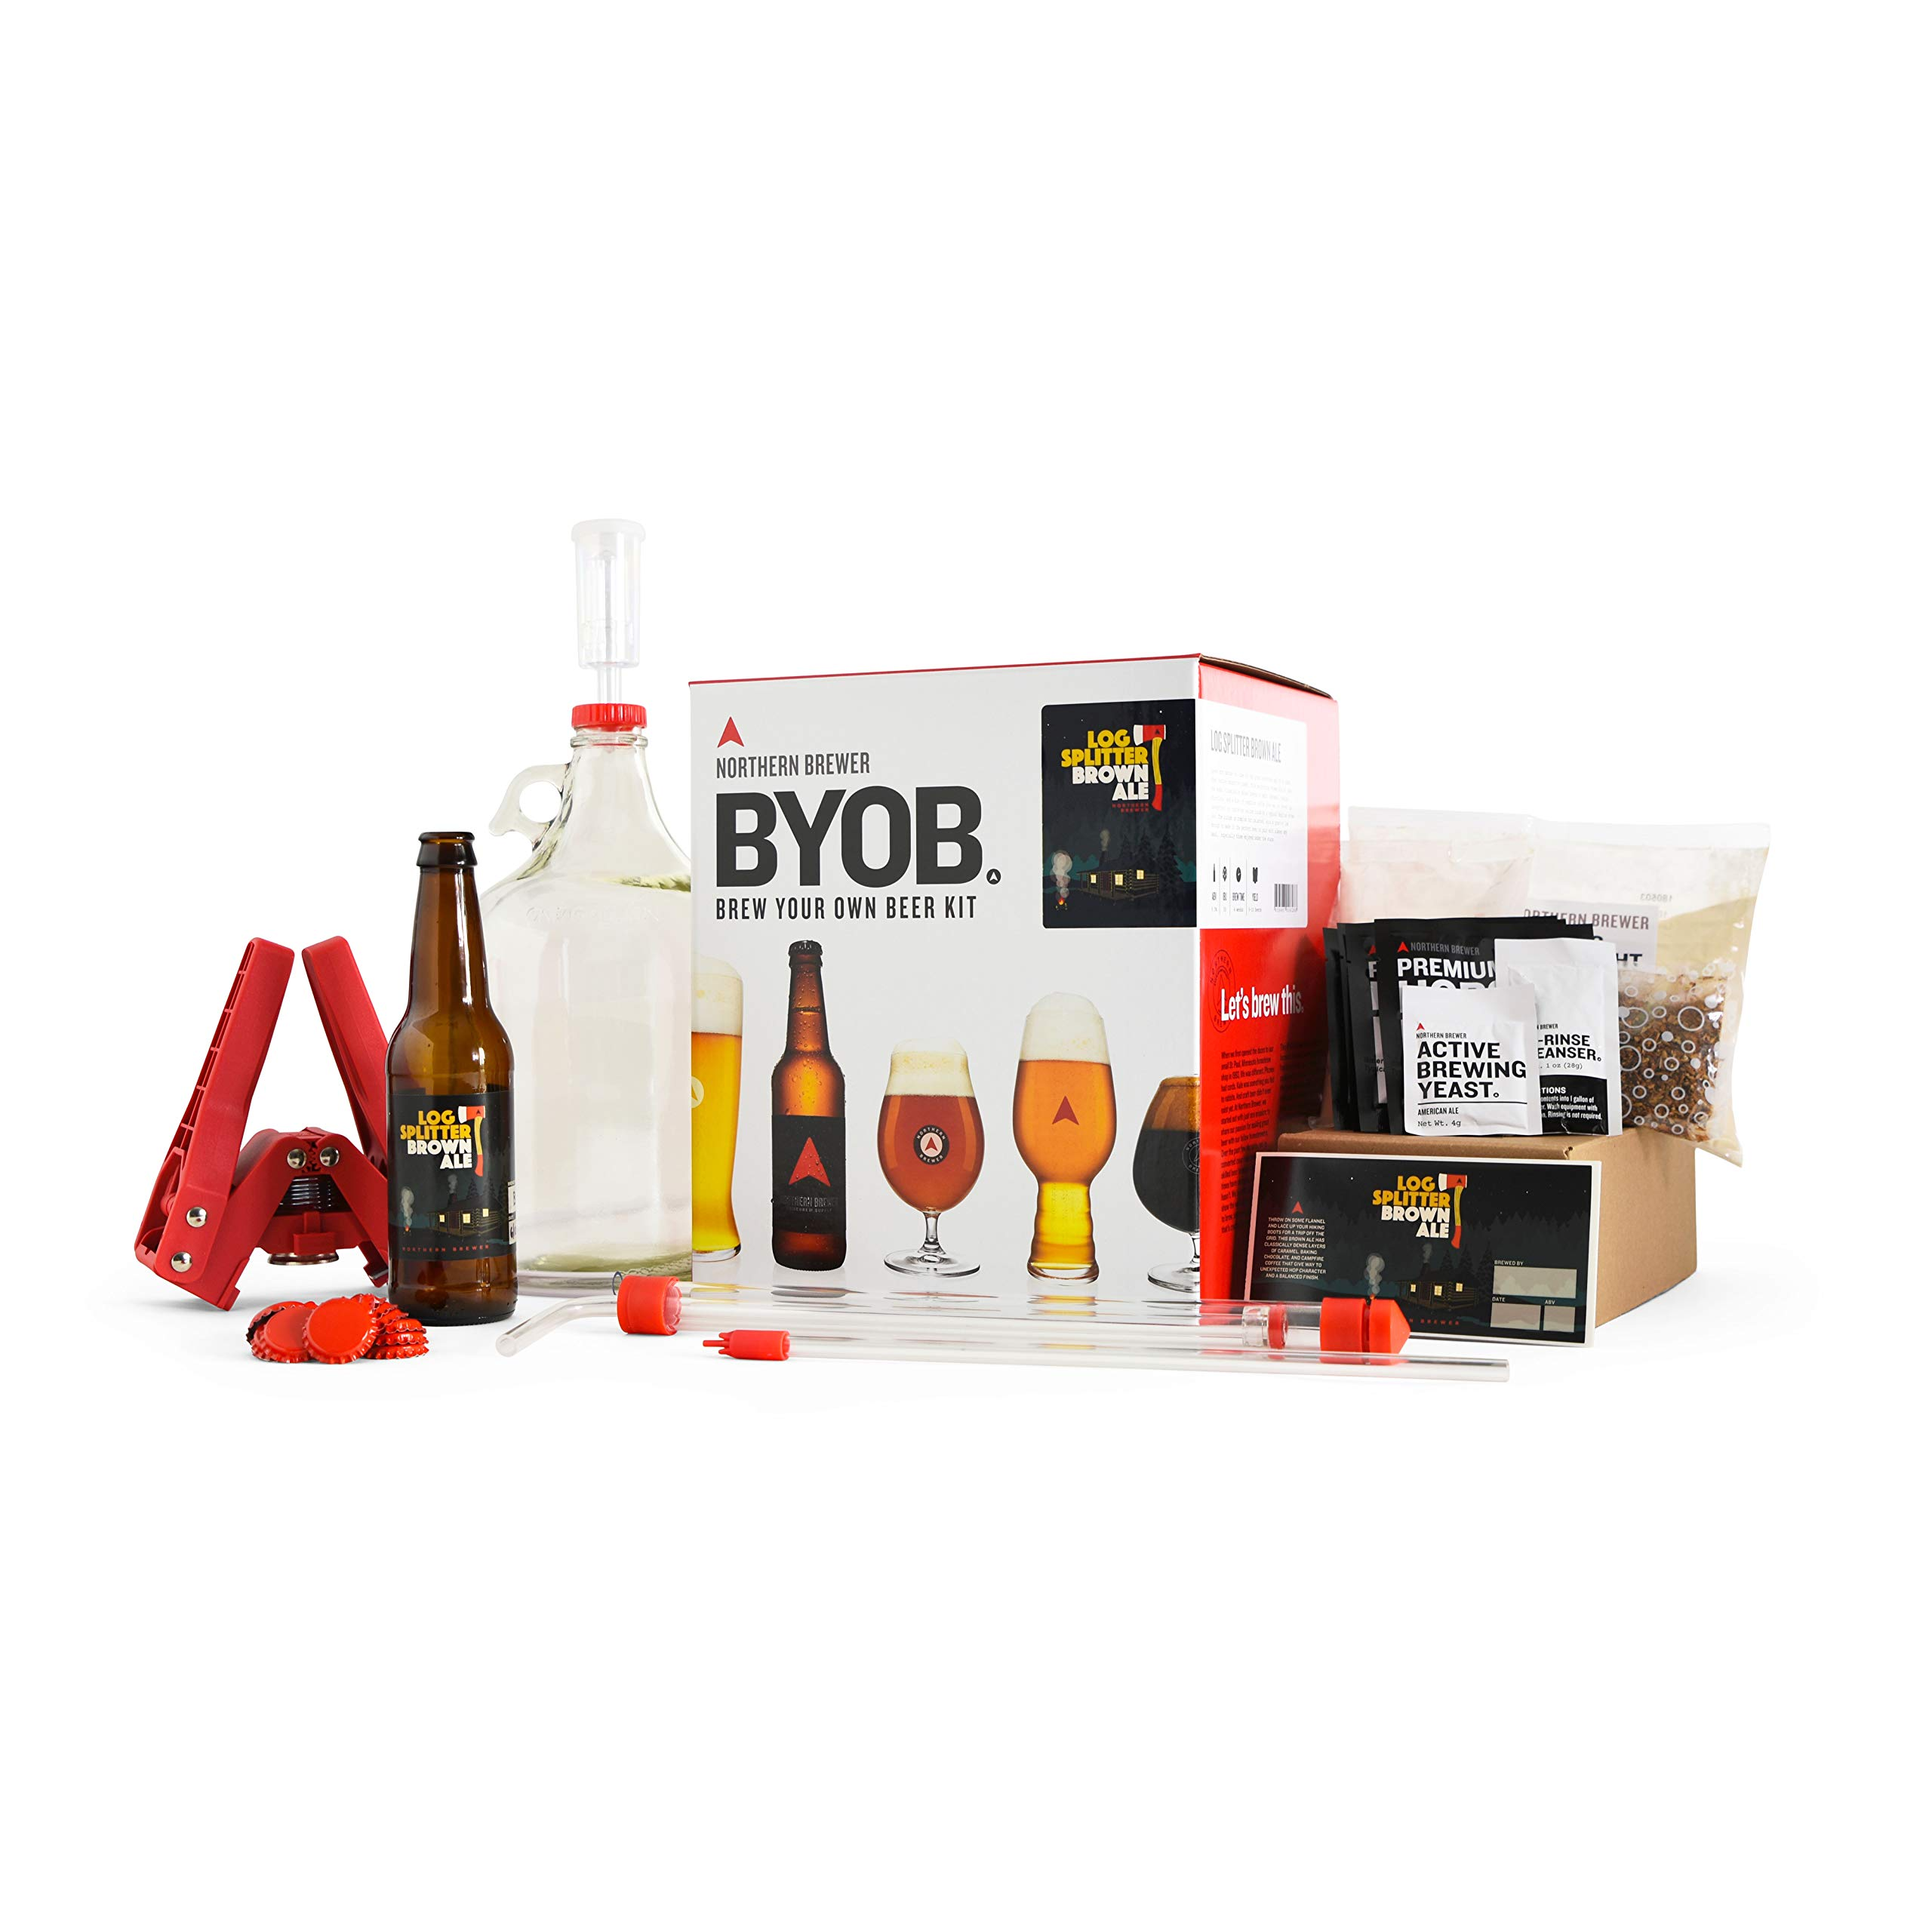 BYOB by Northern Brewer - Brew Your Own Beer Home Beer Making Kit (Log Splitter Brown Ale)